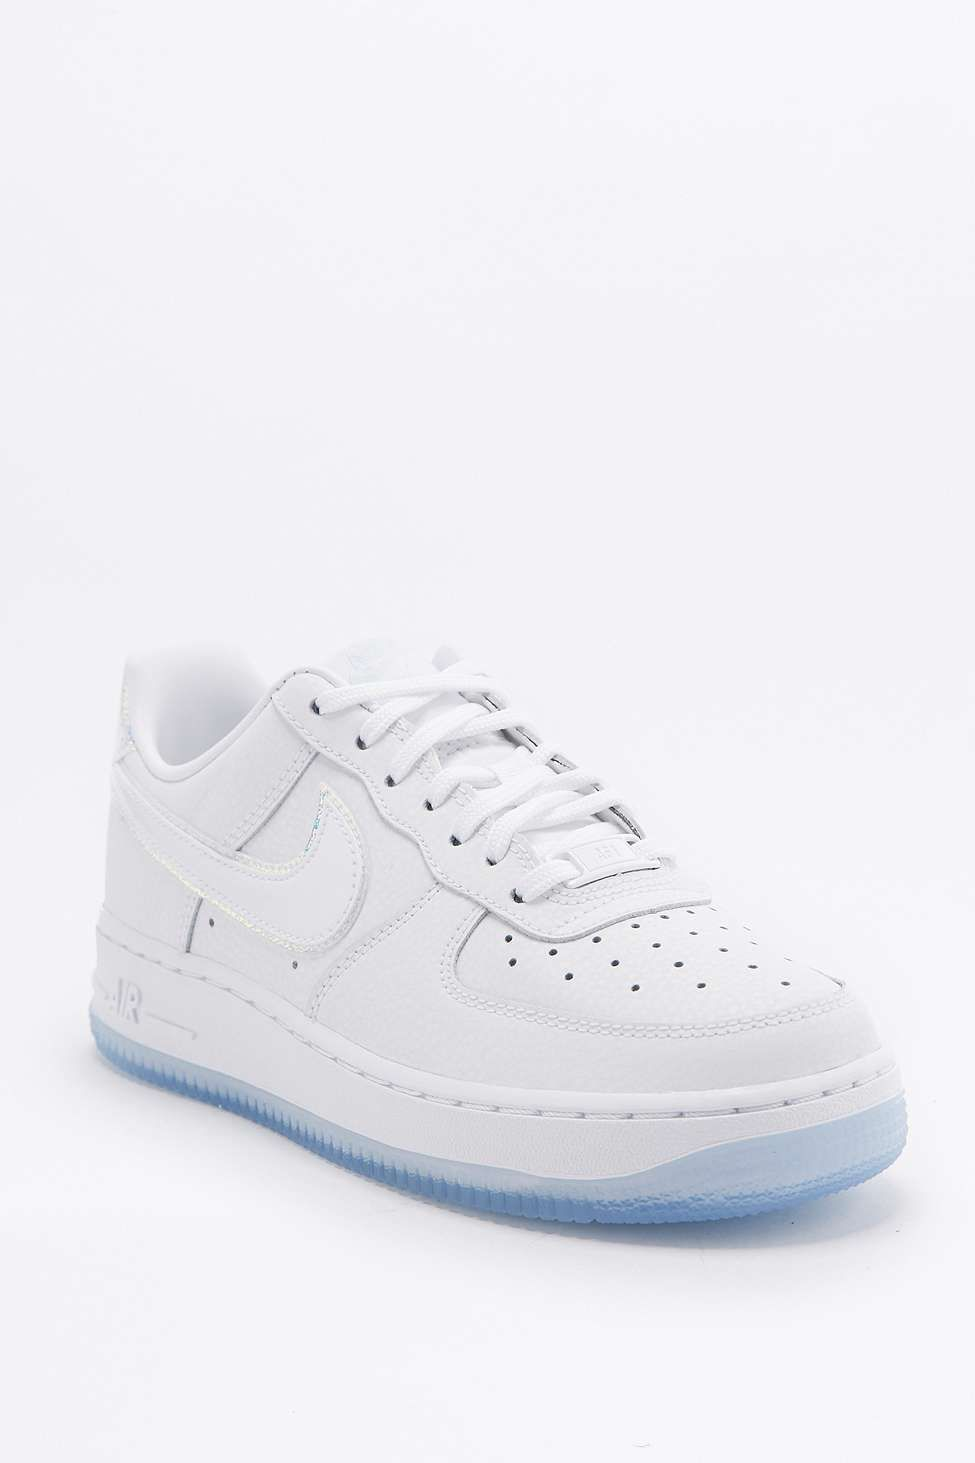 Air Effet Baskets Ultra Nike Force 1 Holographique Blanches yIfvb6gY7m